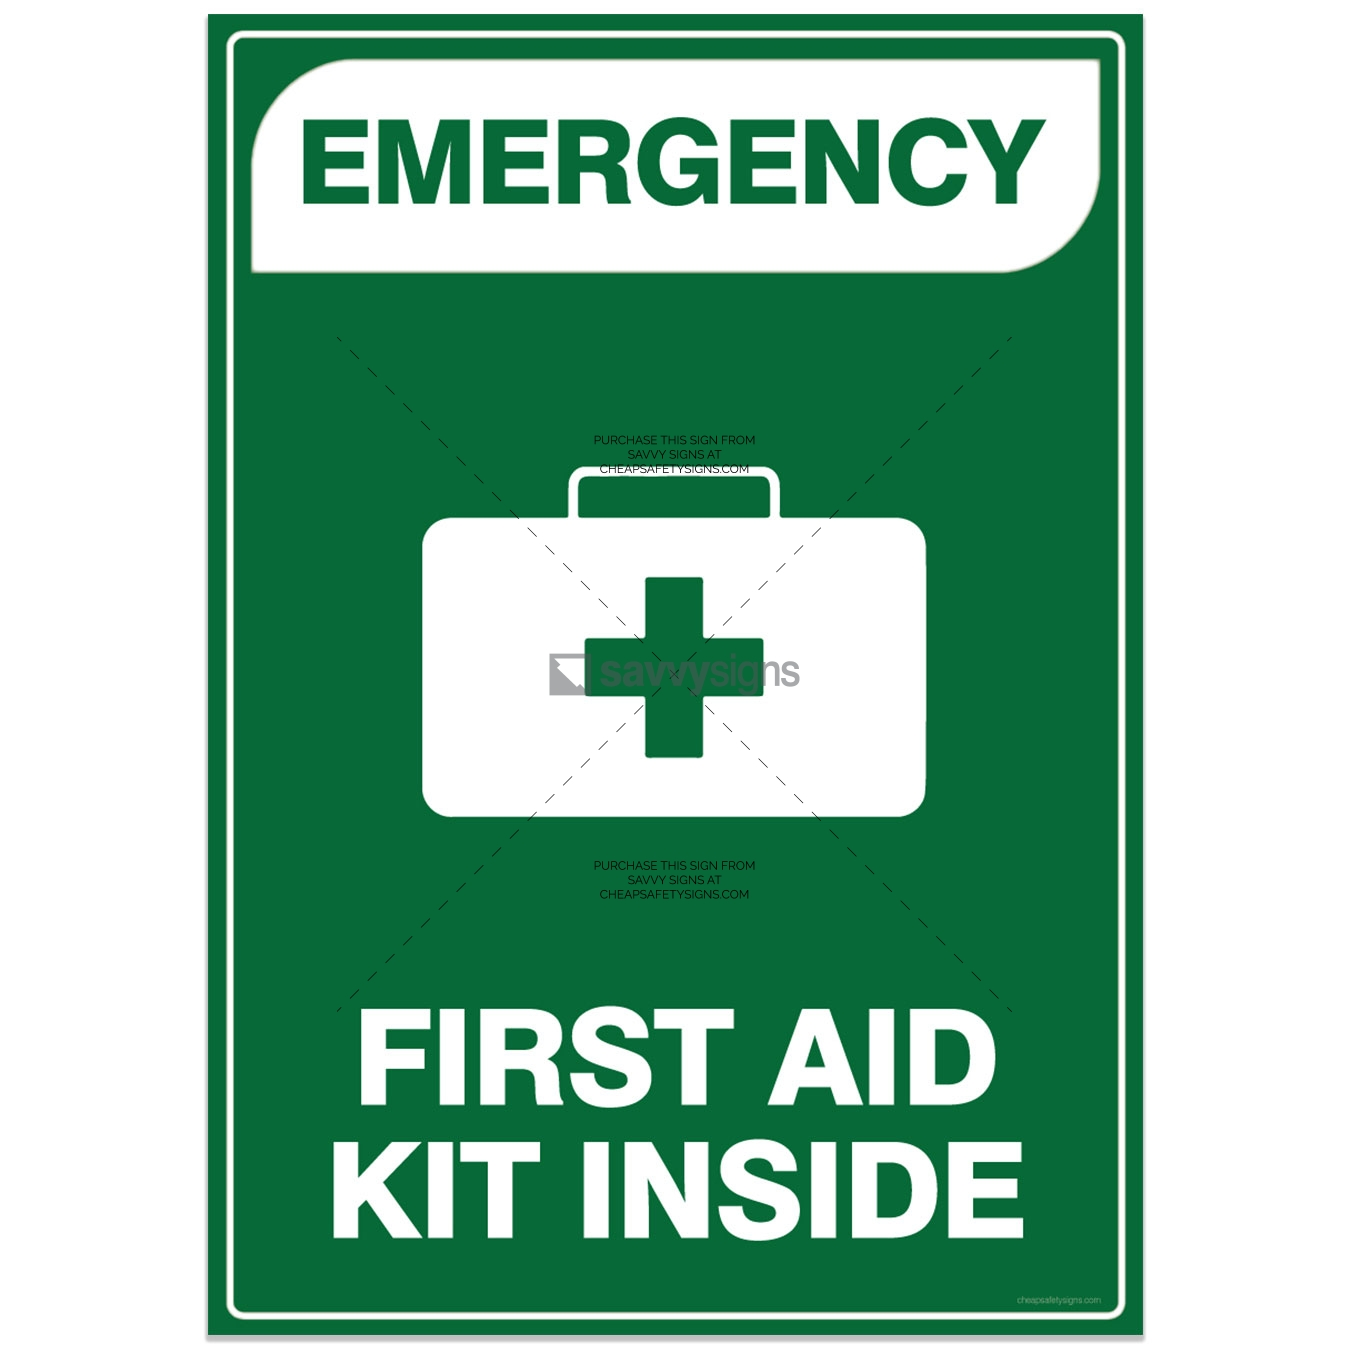 SSEME3042-EMERGENCY-Workplace-Safety-Signs_Savvy-Signs_v3